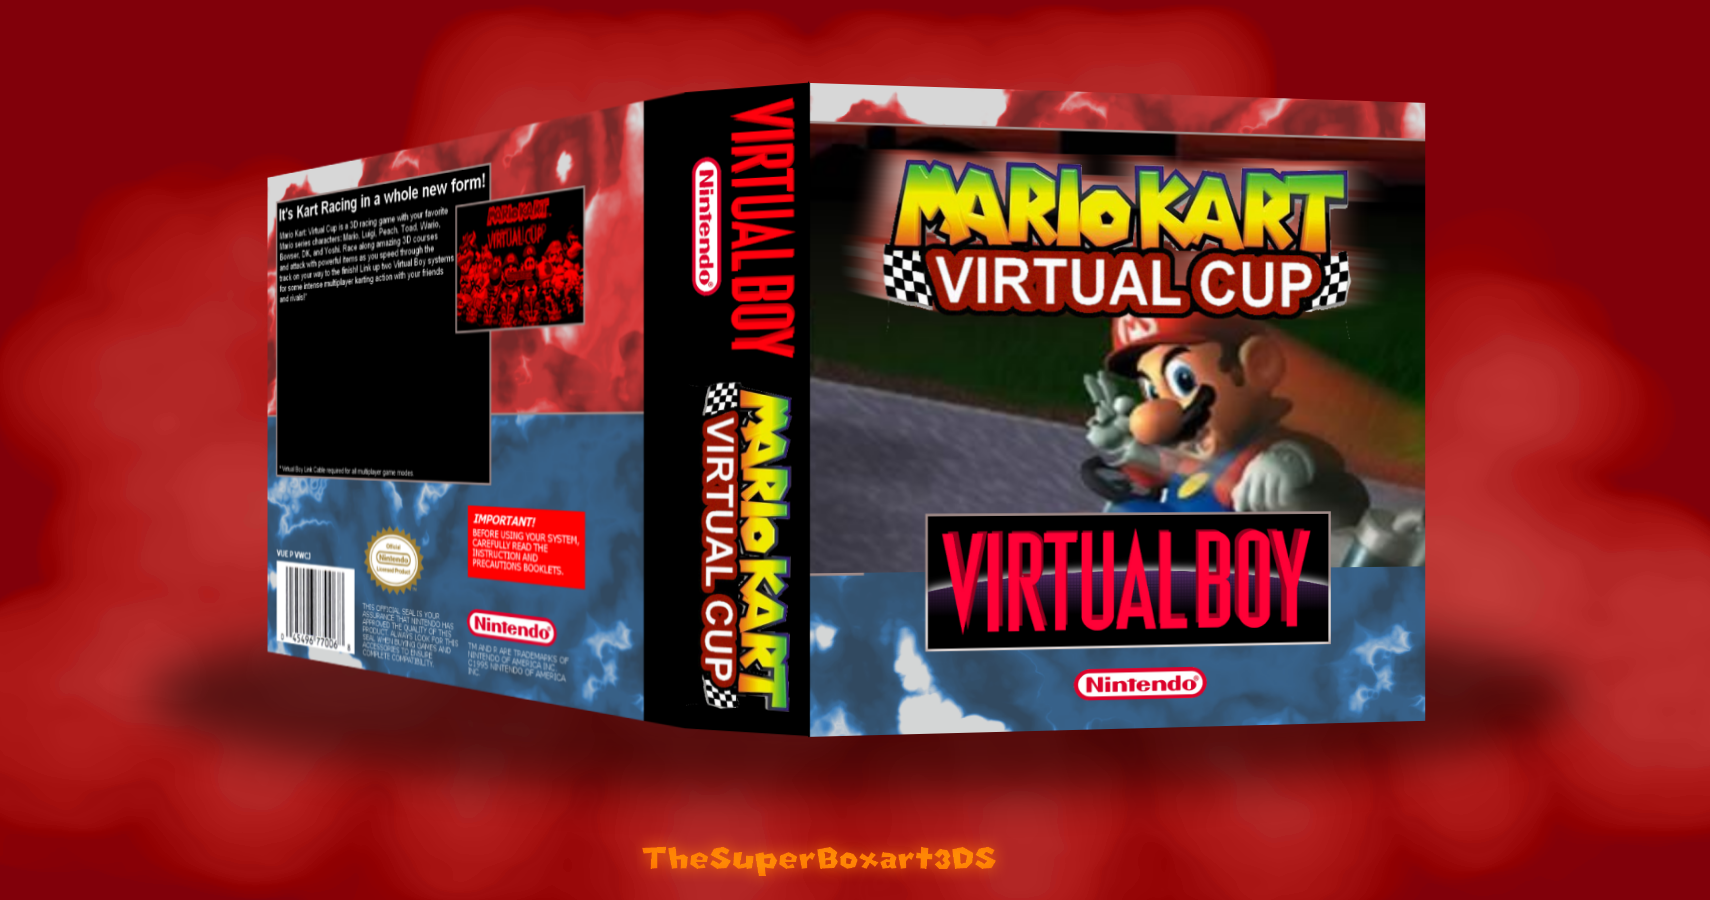 Mario Kart: Virtual Cup box cover